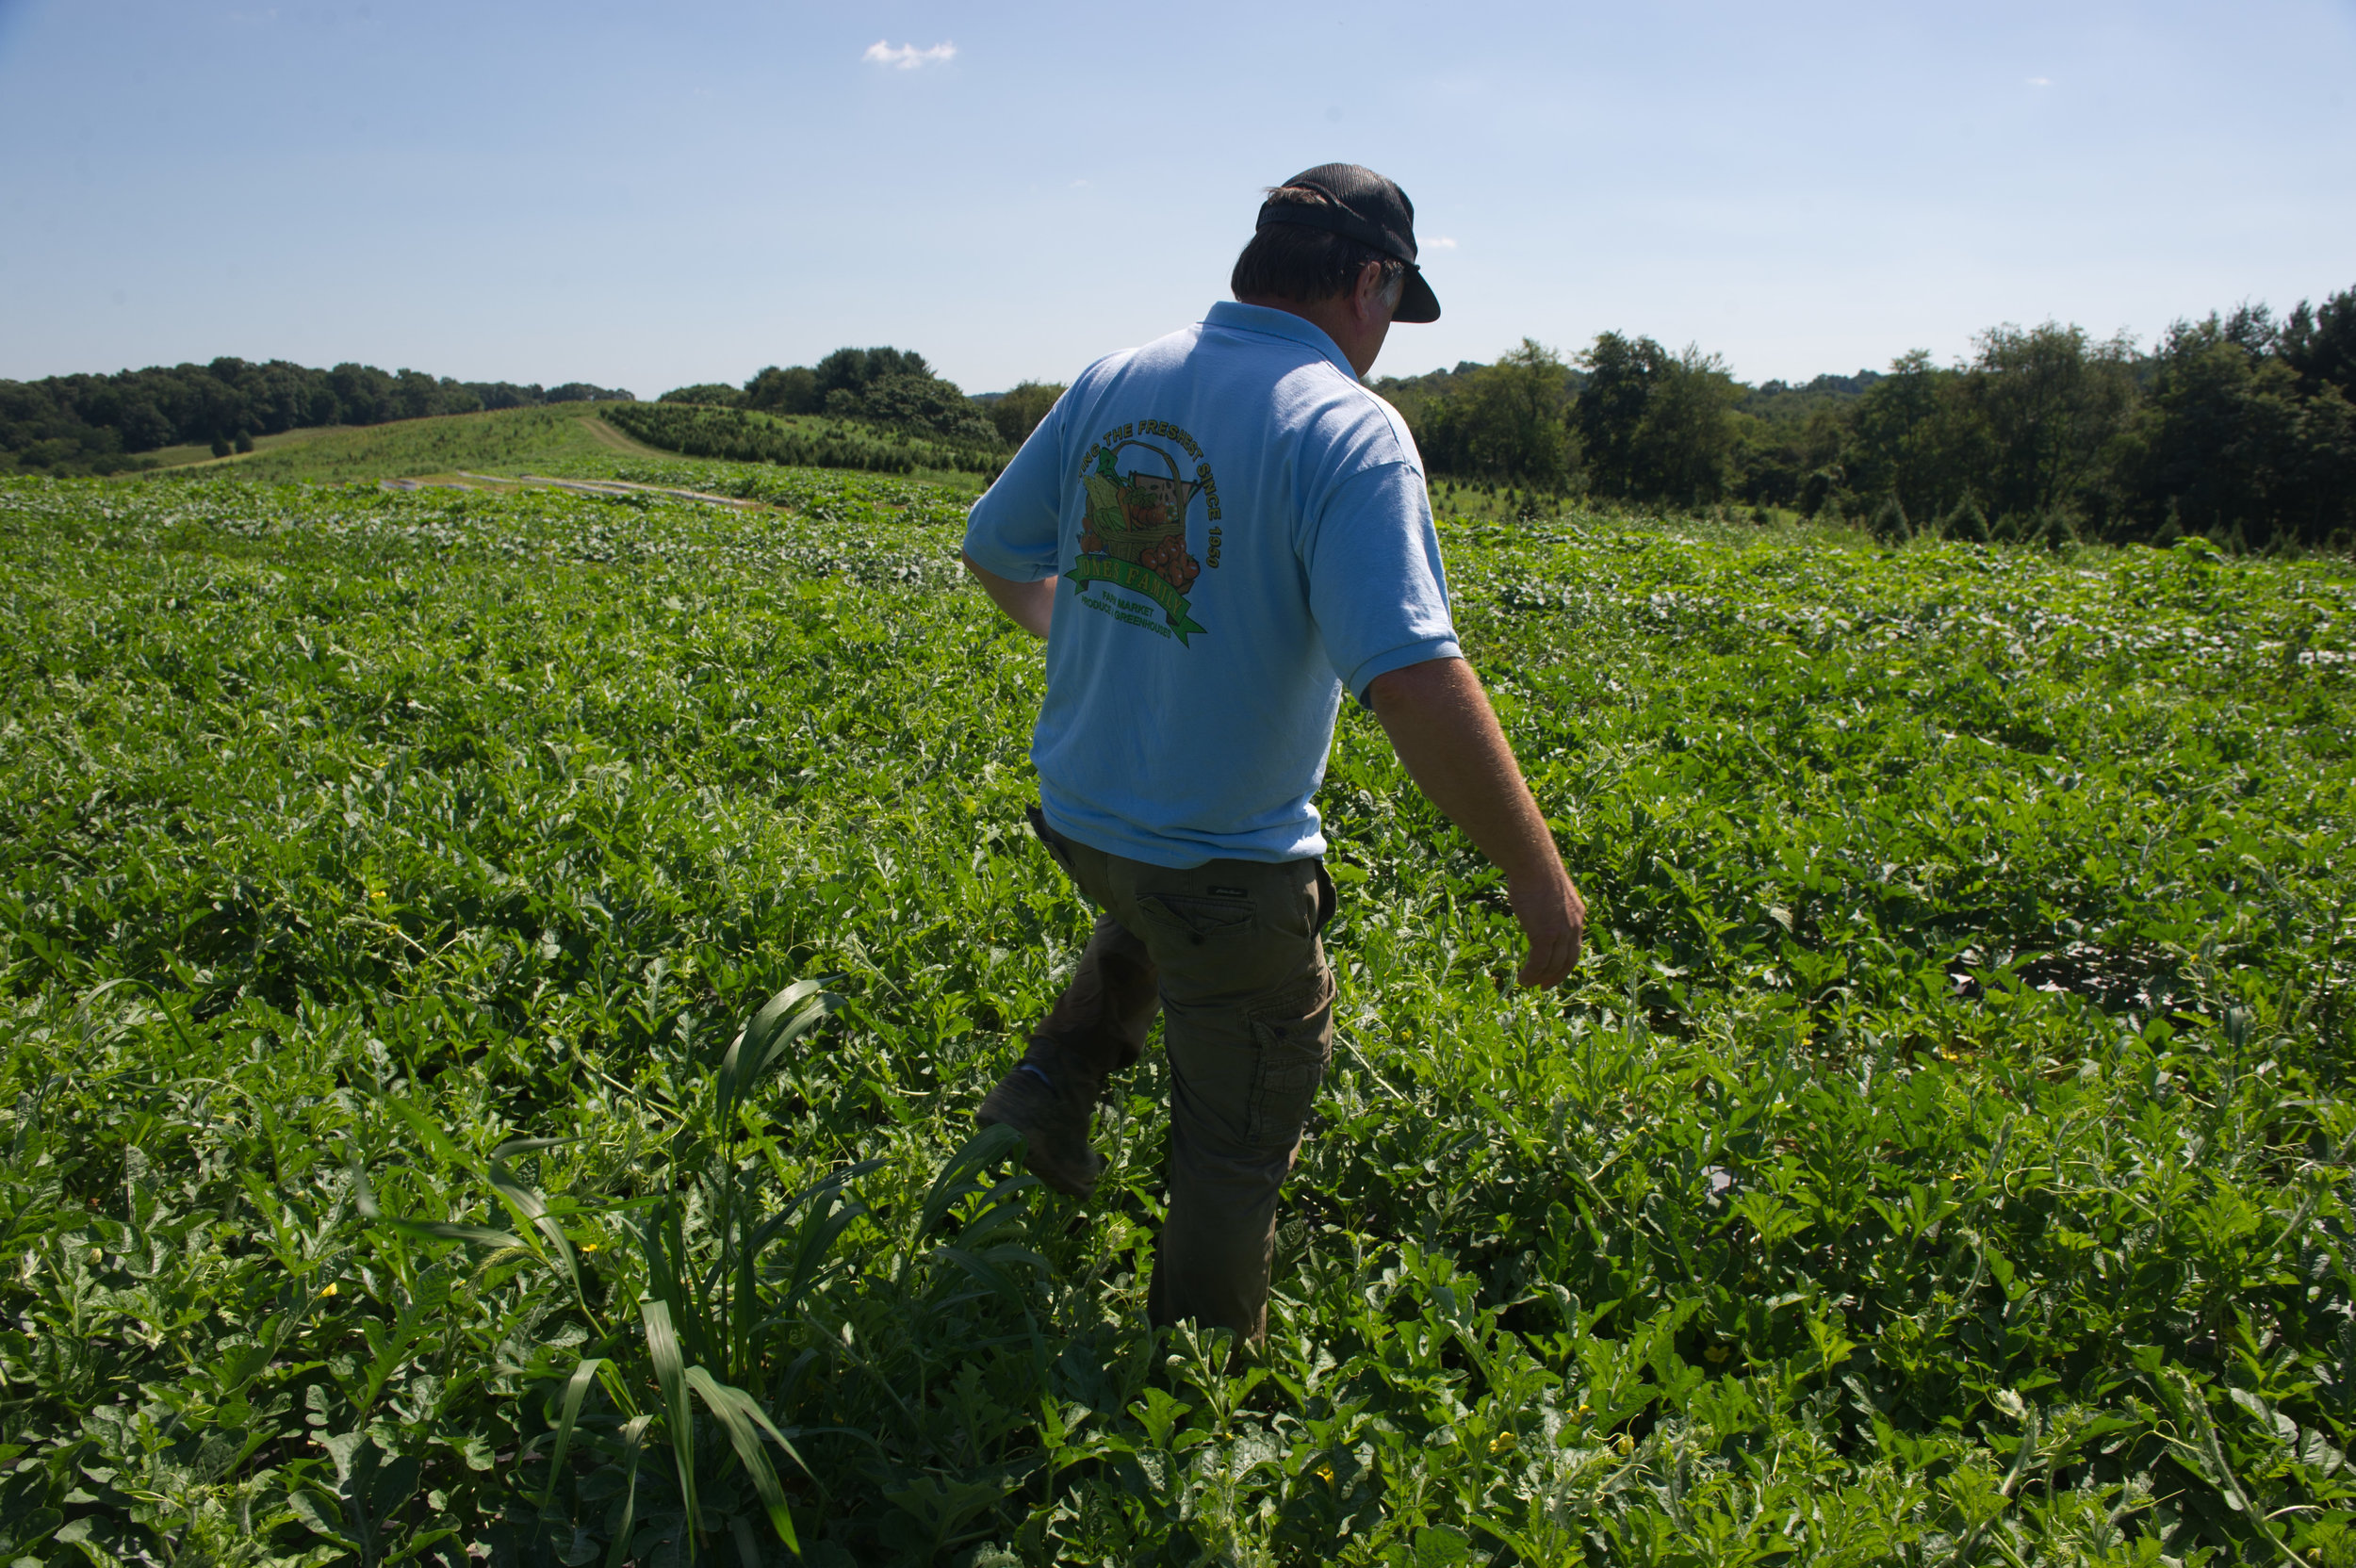 Image by Edwin Remsberg. Image shows individual walking in a field with growing crops.